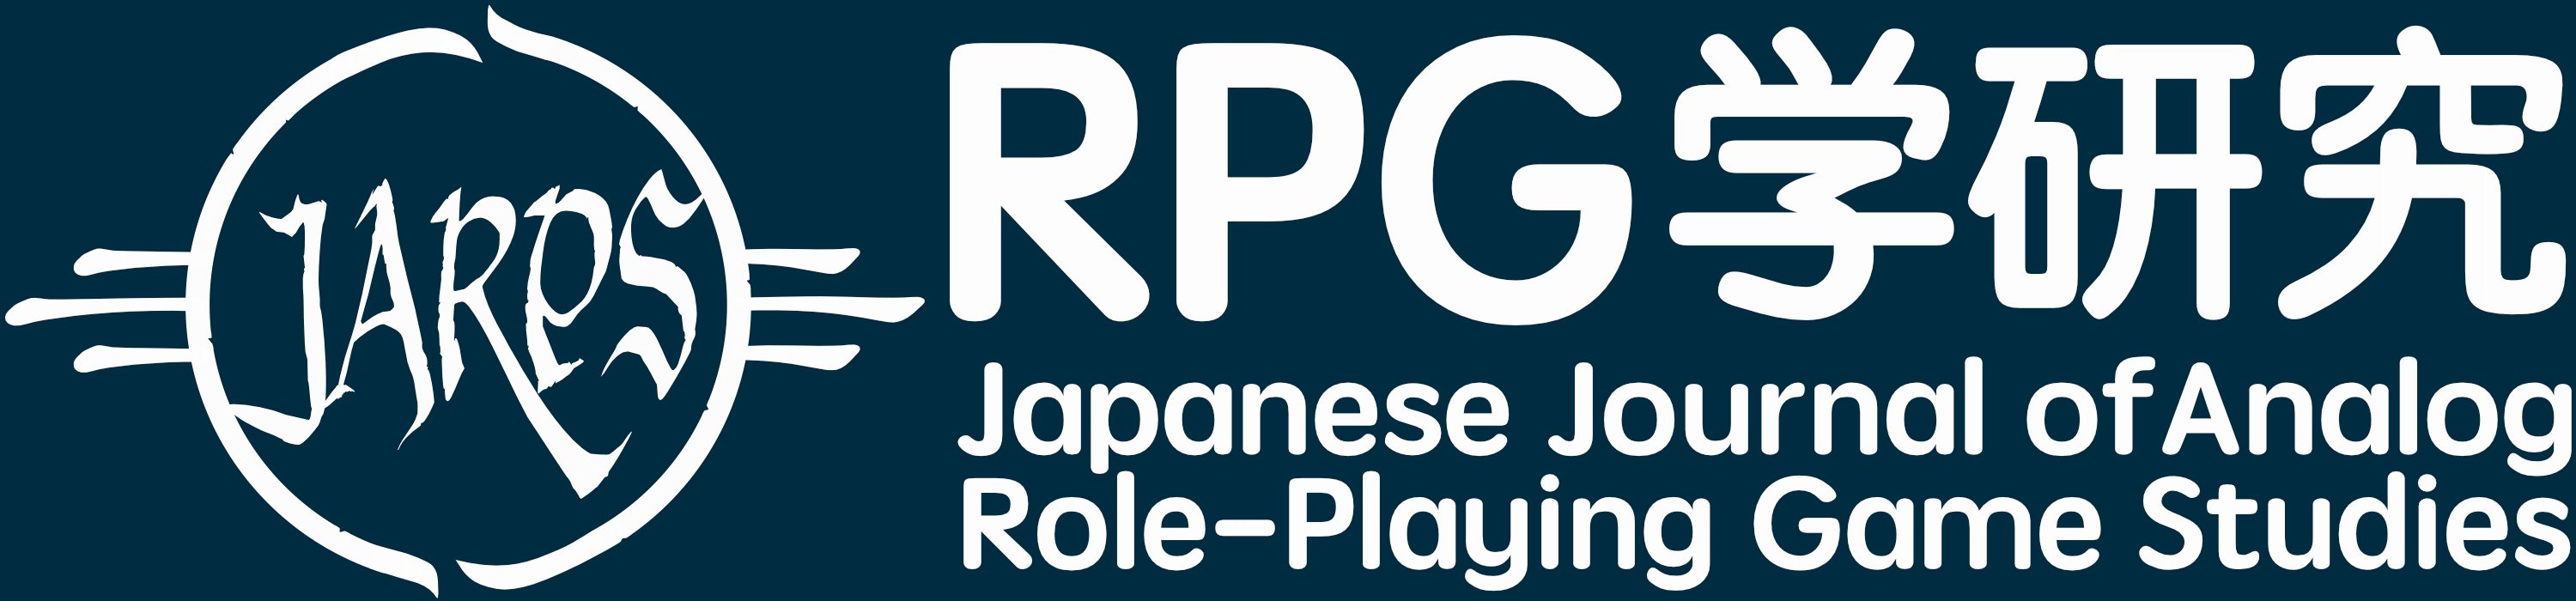 Japanese Journal of Analog Role-Playing Game Studies